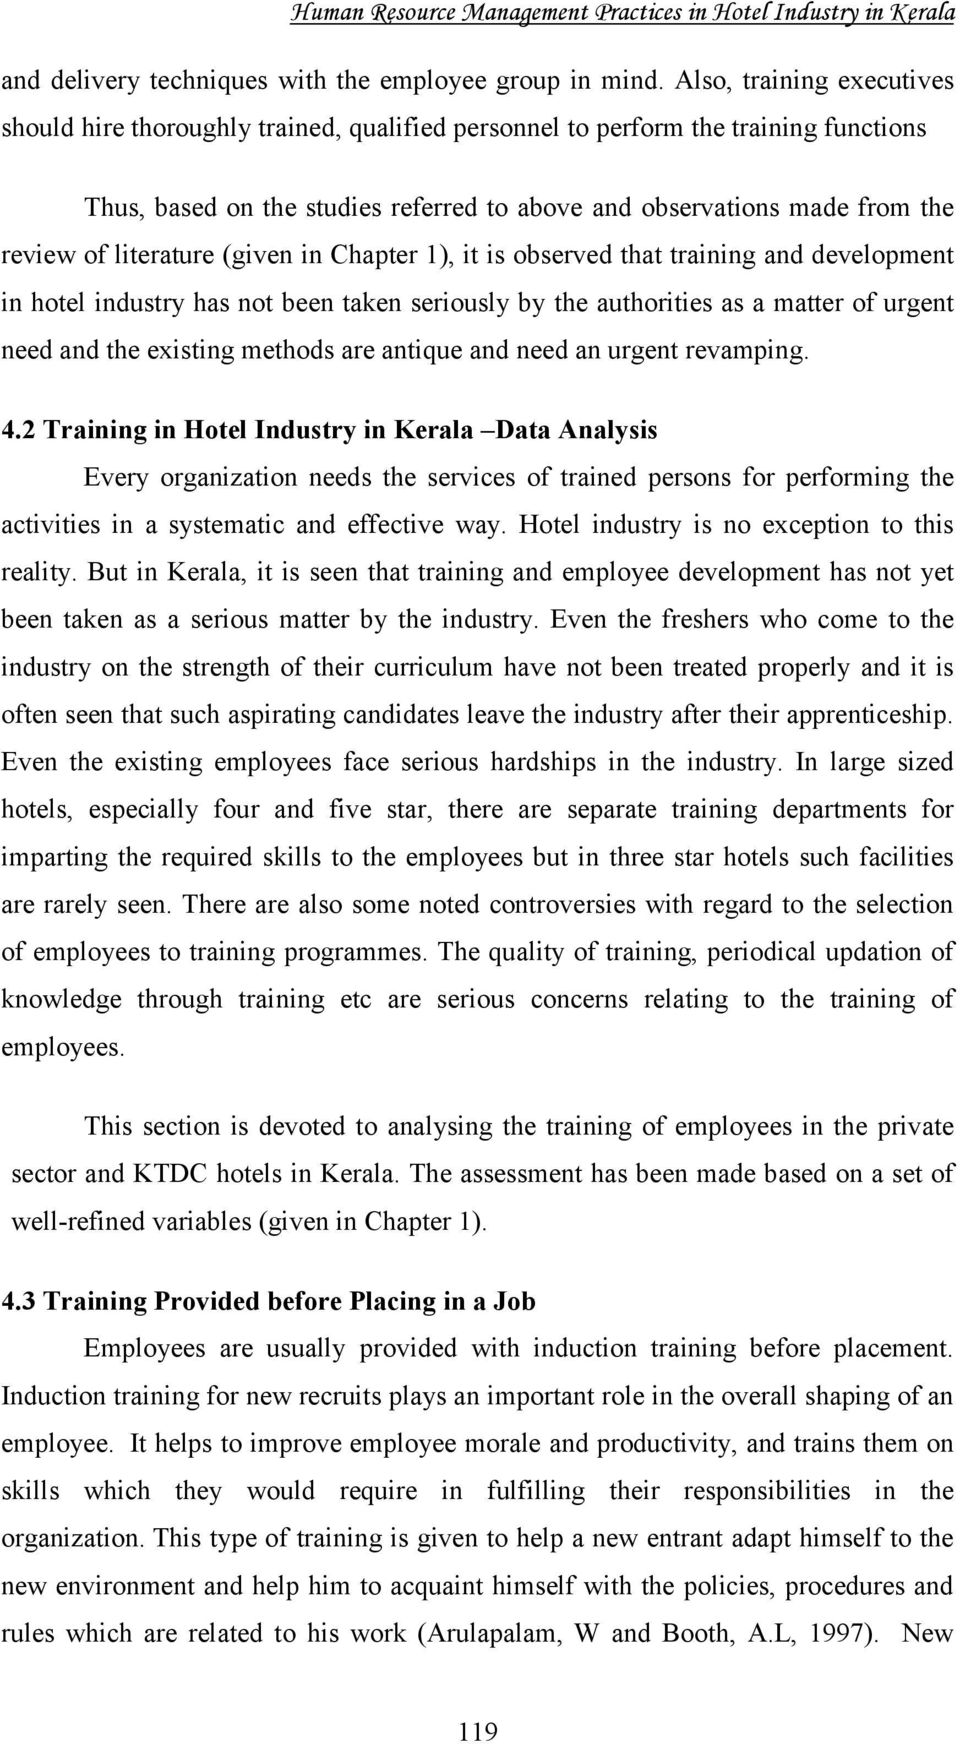 literature (given in Chapter ), it is observed that training and development in hotel industry has not been taken seriously by the authorities as a matter of urgent need and the existing methods are